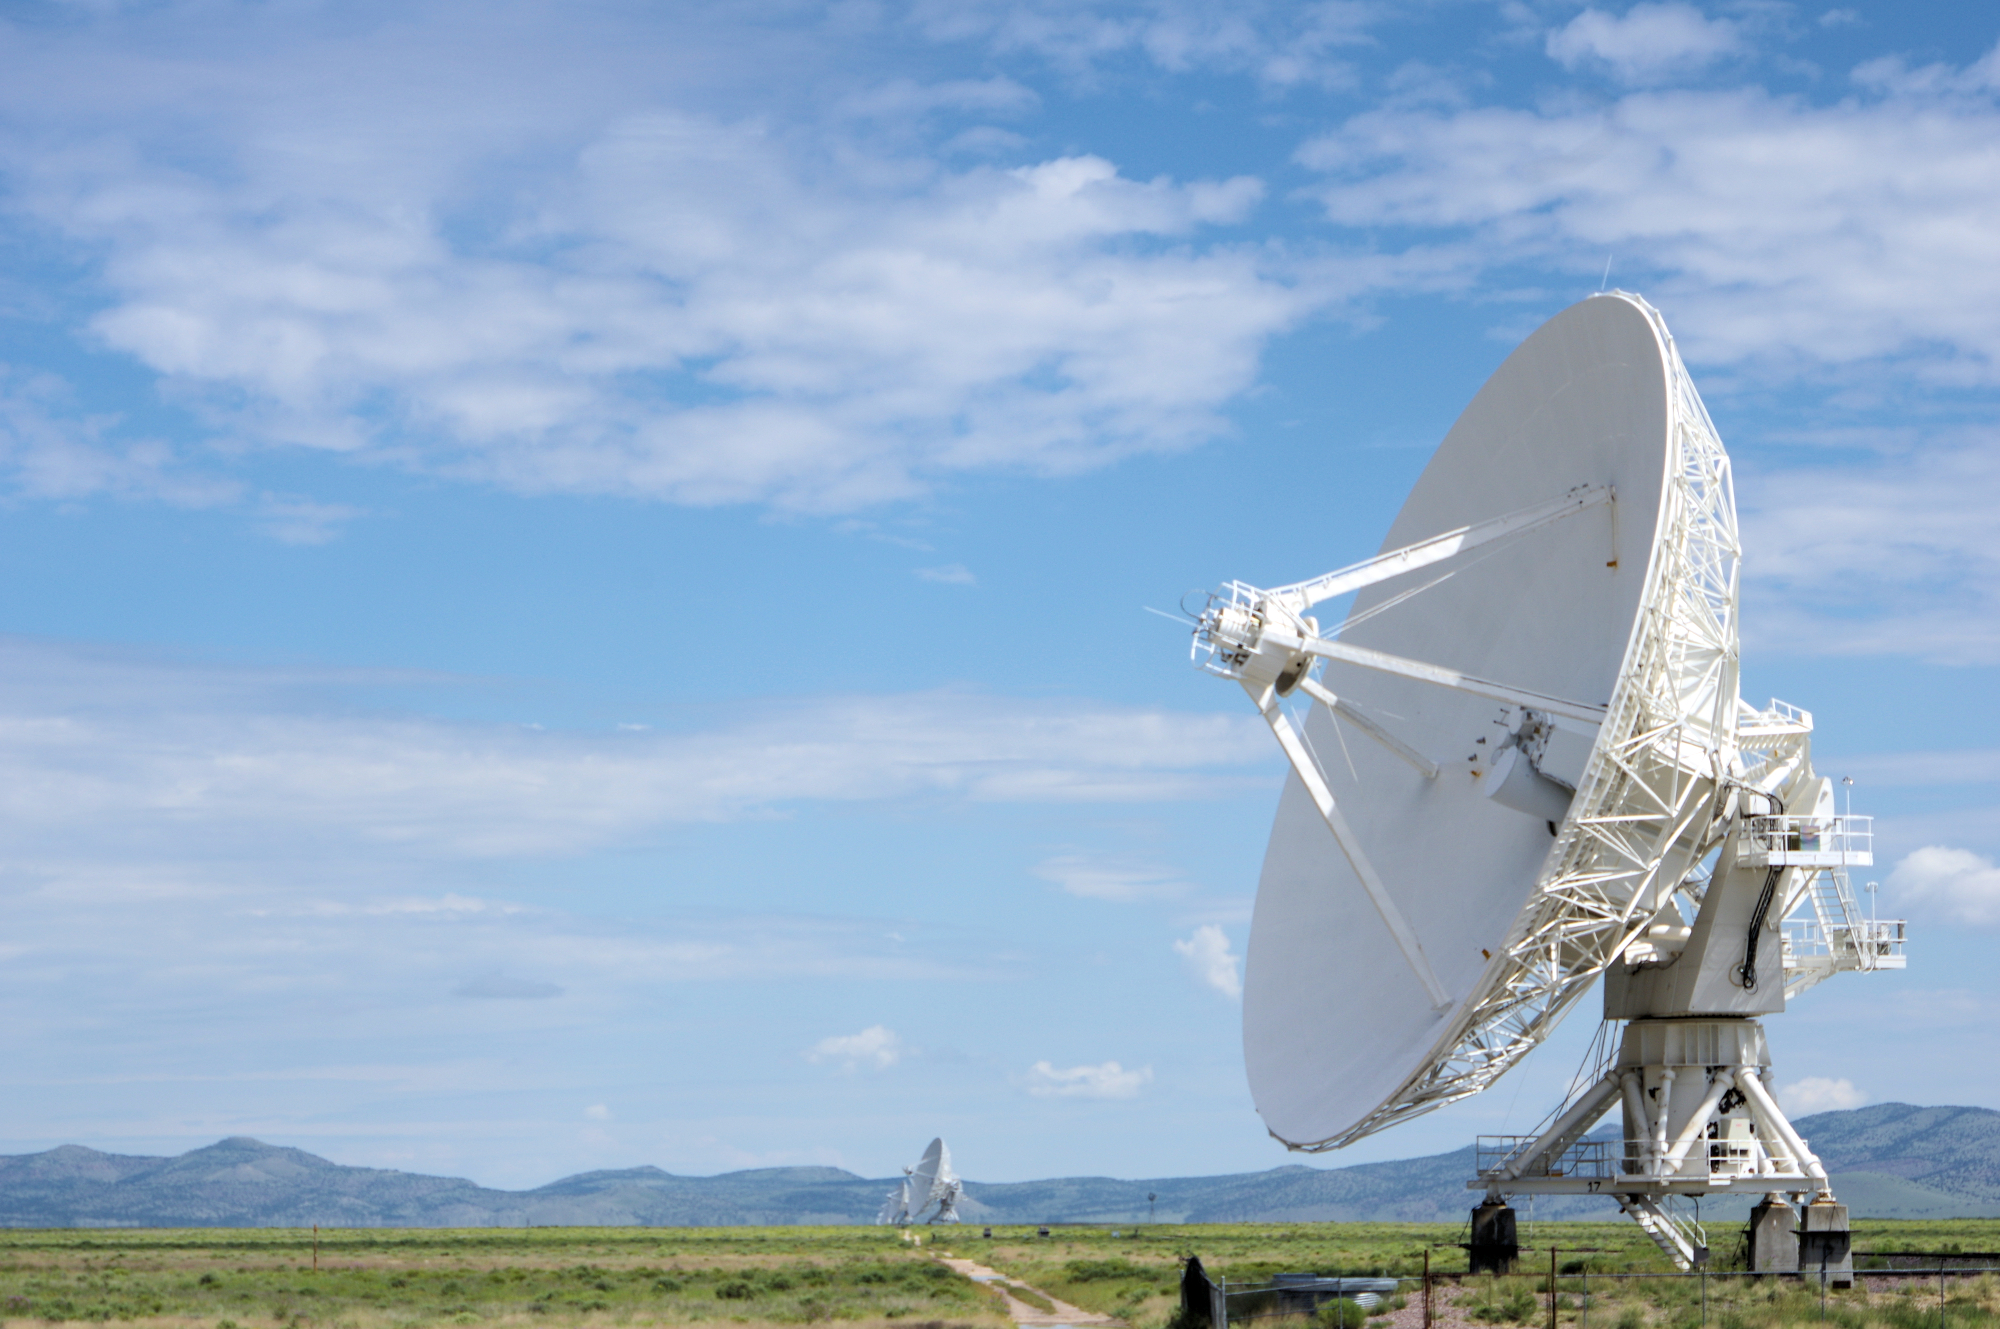 The Very Large Array, located on the San Augustin Plains in northern Socorro County, is comprised of 27 giant radio telescopes which attracts astronomers from around the globe, and brings in science-based tourism to the economy